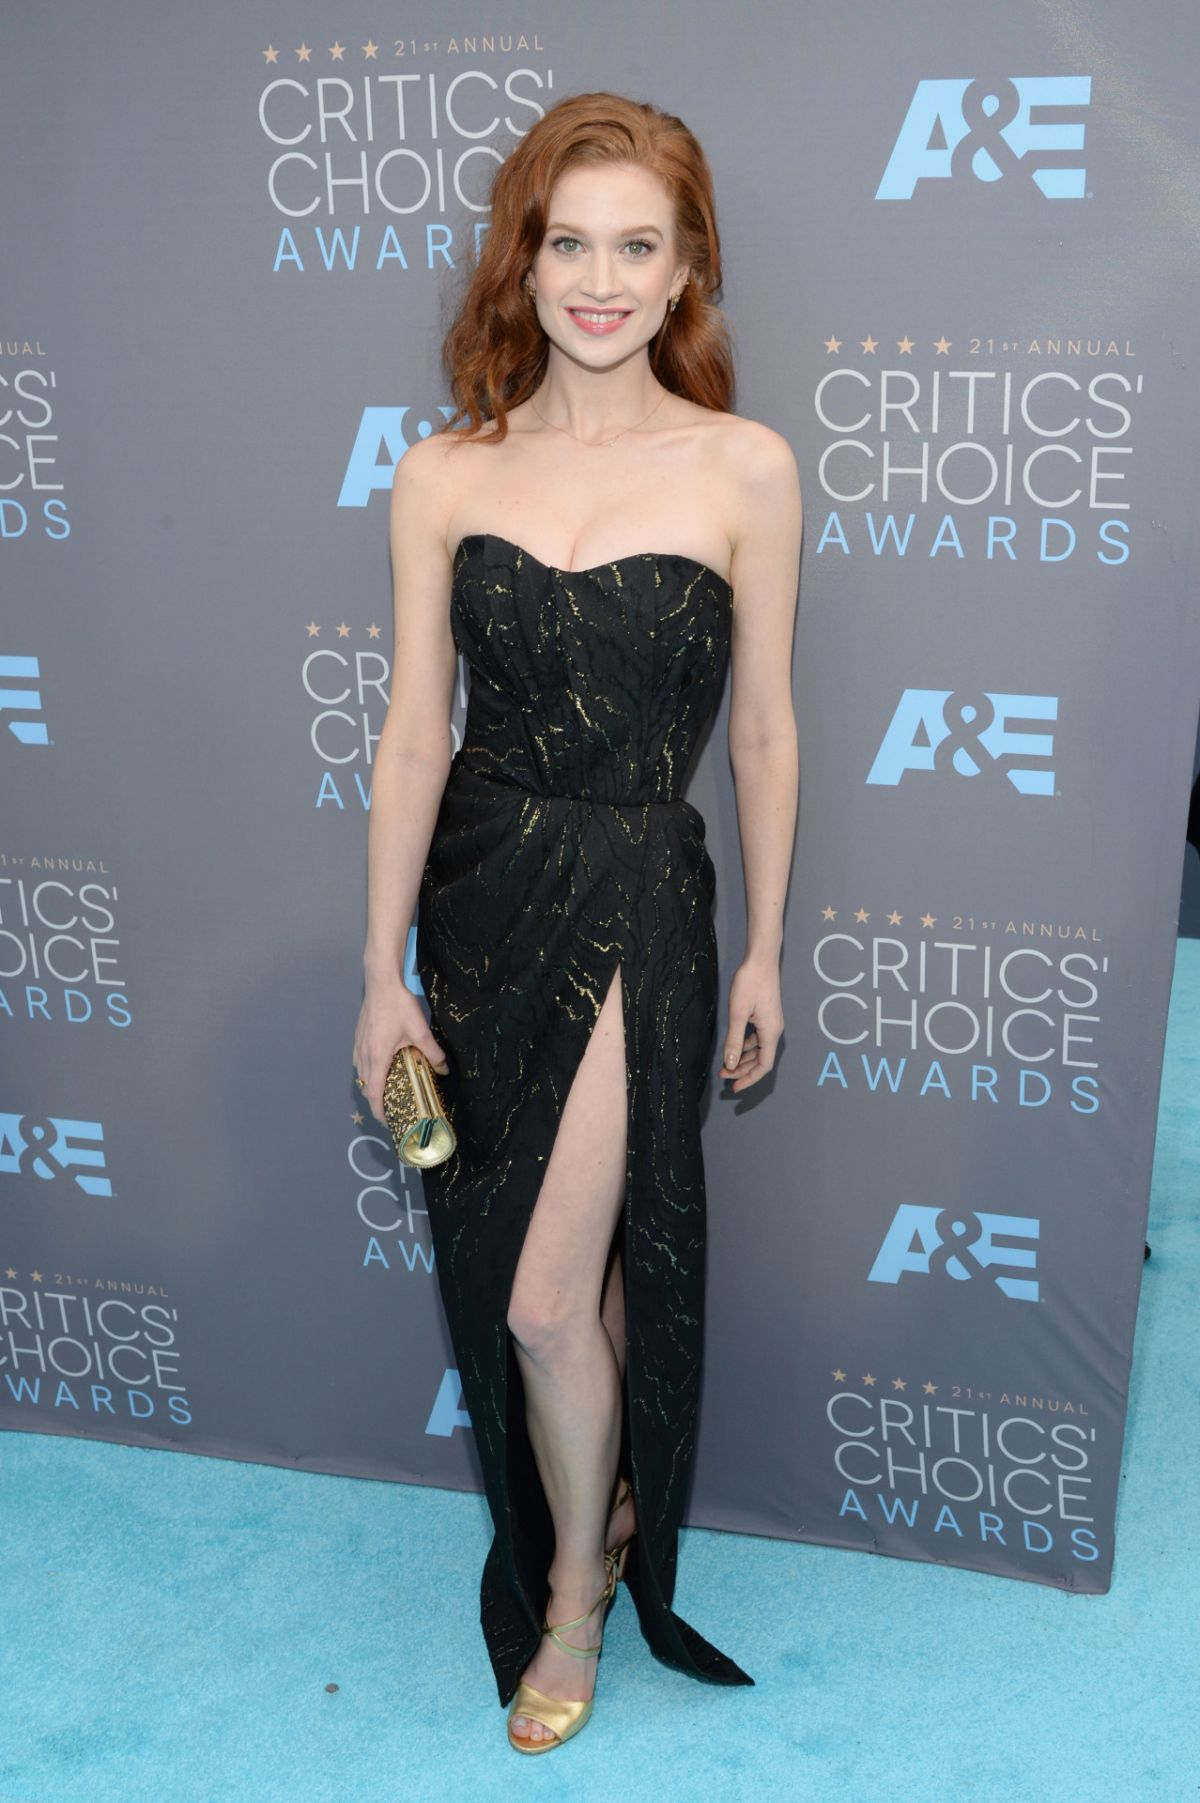 SARAH HAY at Critics's Choice Awards 2016 in Santa Monica 01/17/2016